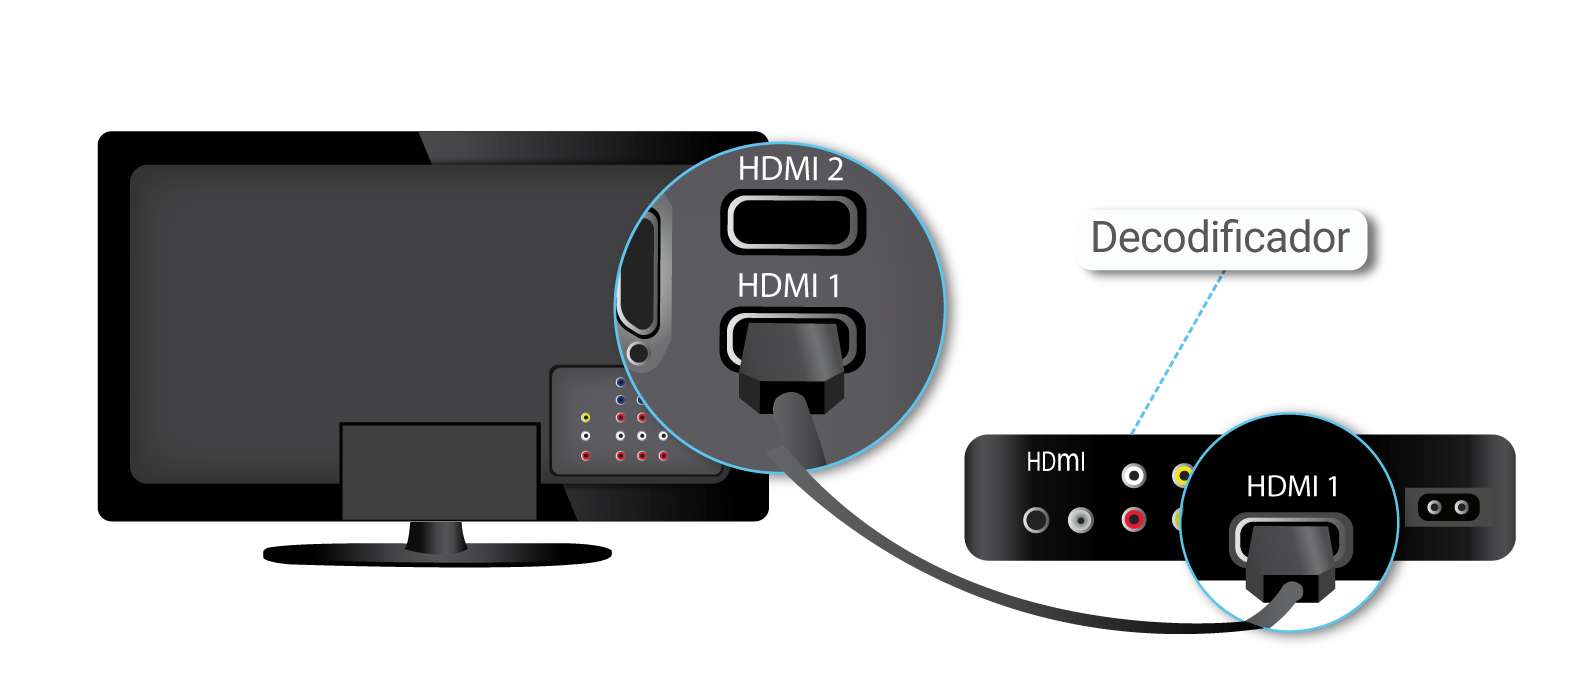 cable-HDMI.png